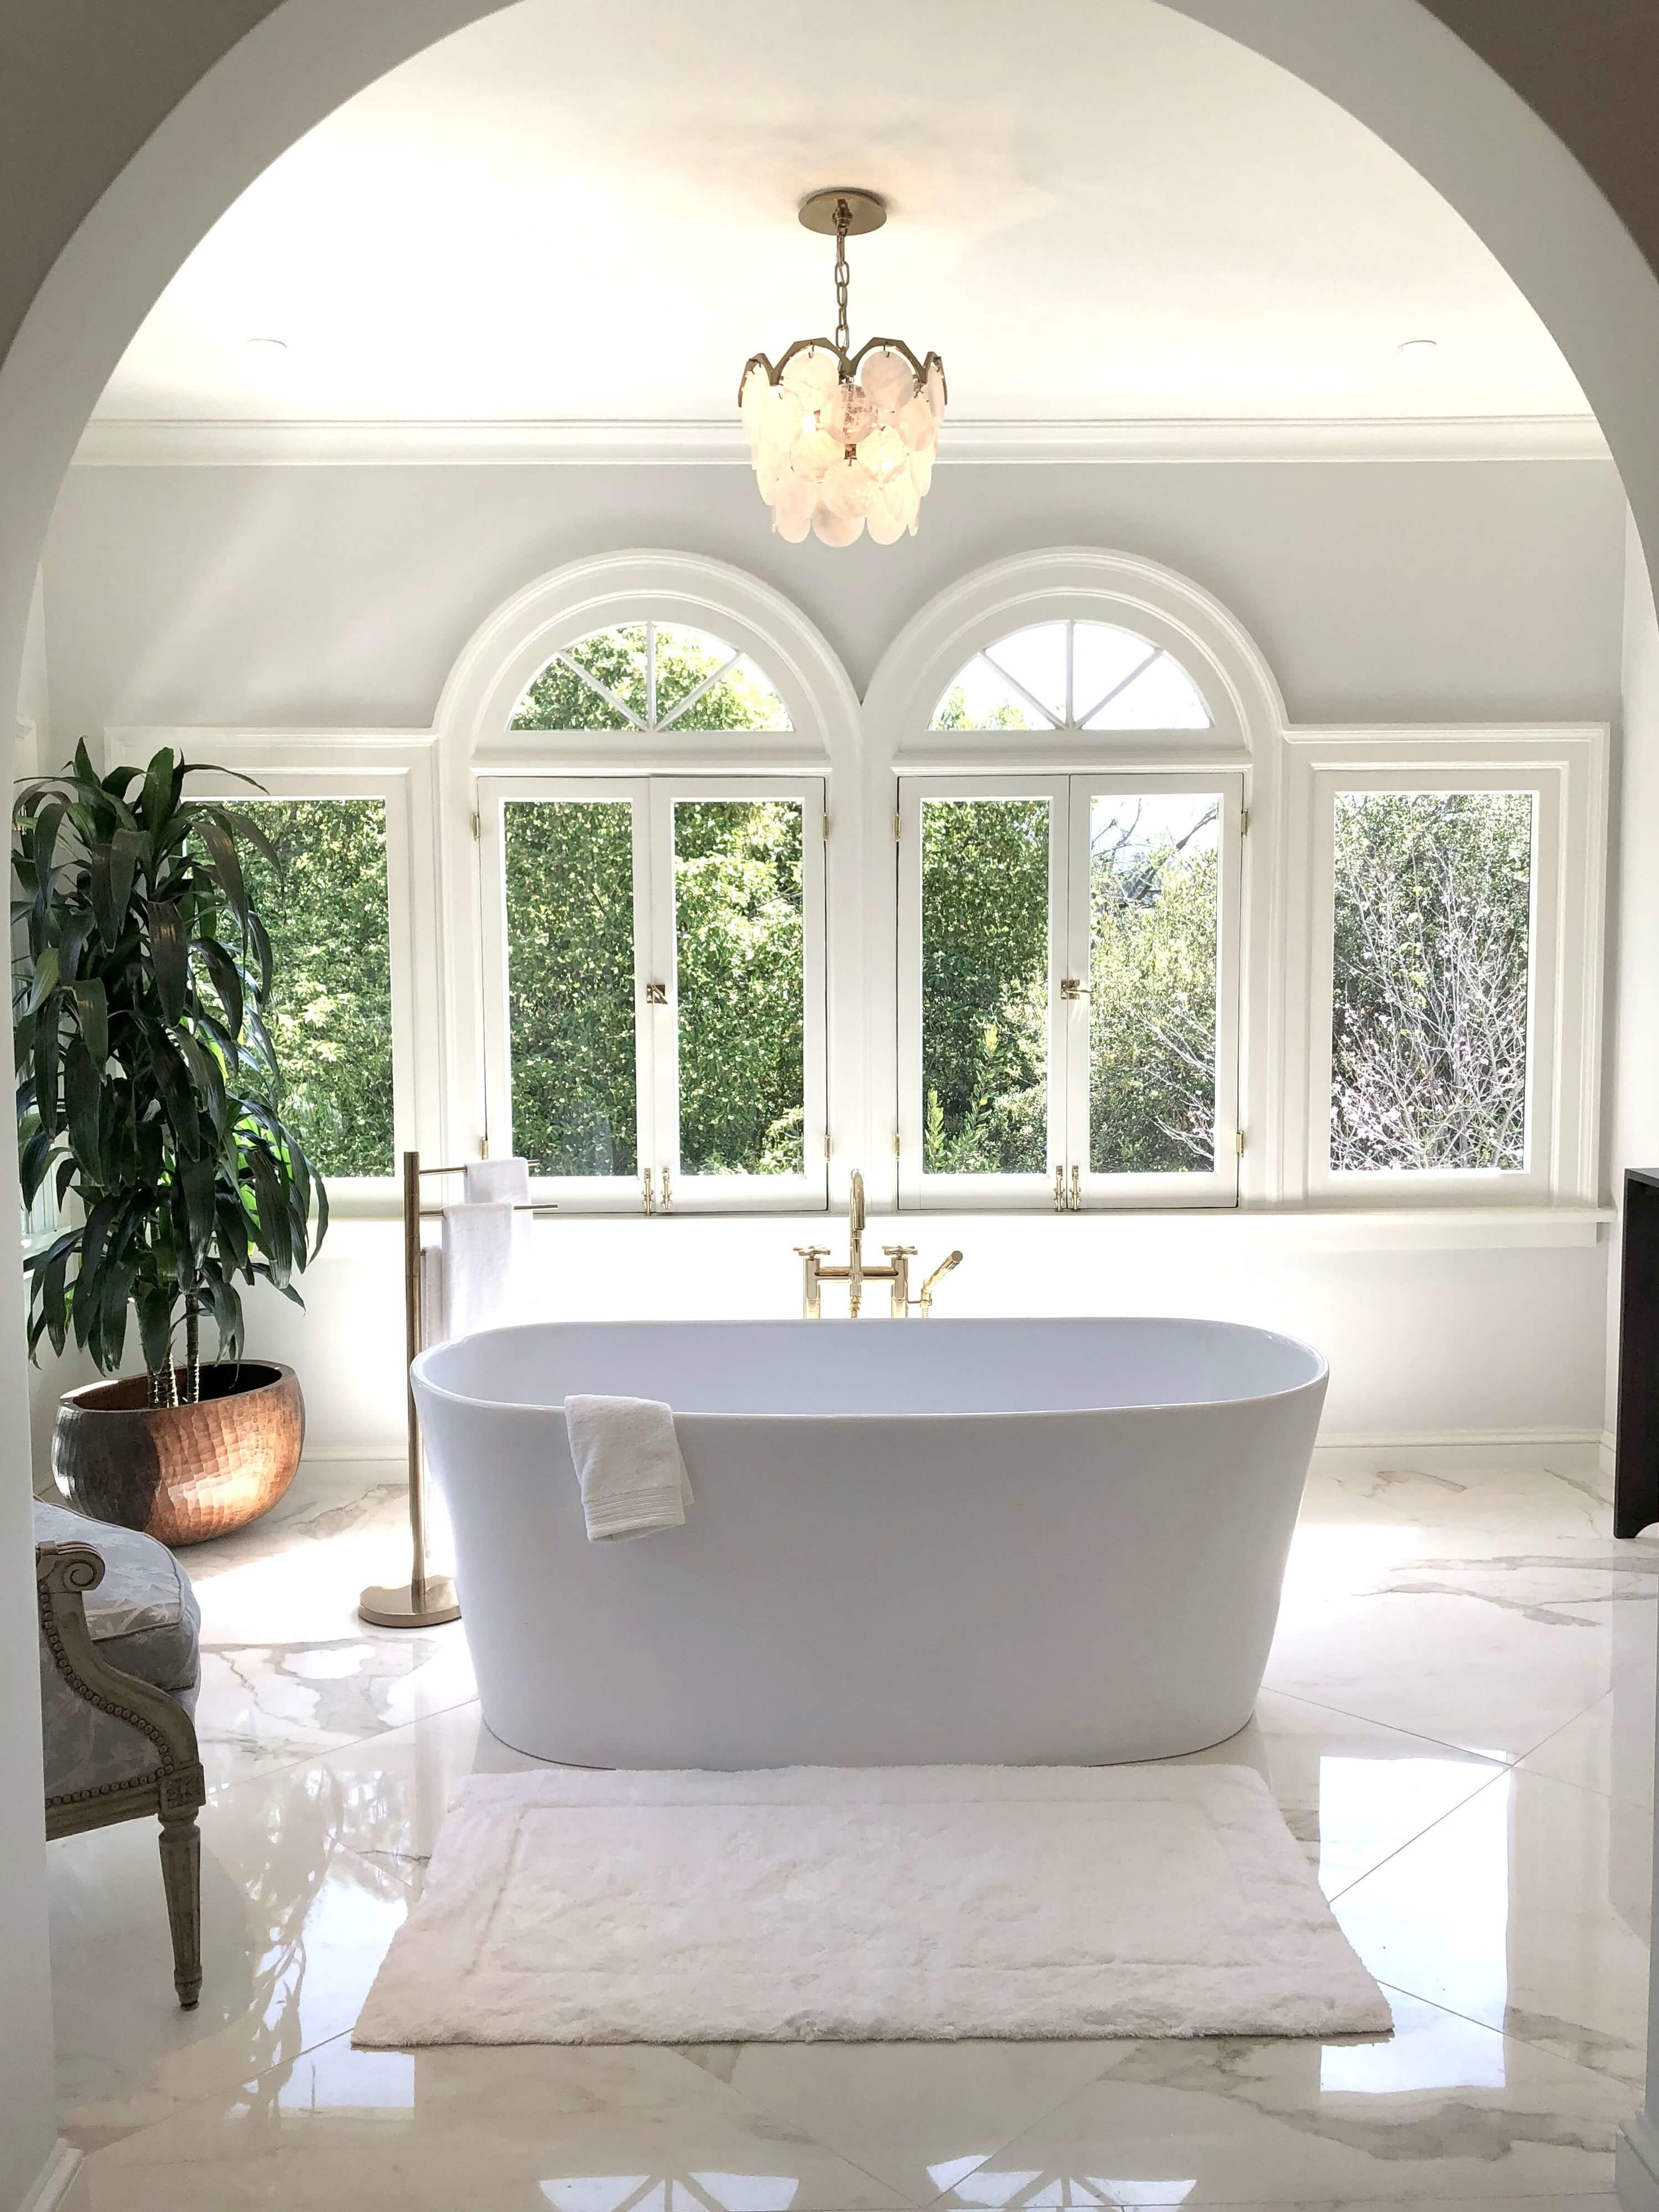 A beautifully simple silhouette is created in this tub room, designed by Parker West Interiors in the Pasadena Showcase House of Design. #tub #freestandingtub #bathroomdesign #bathroomideas